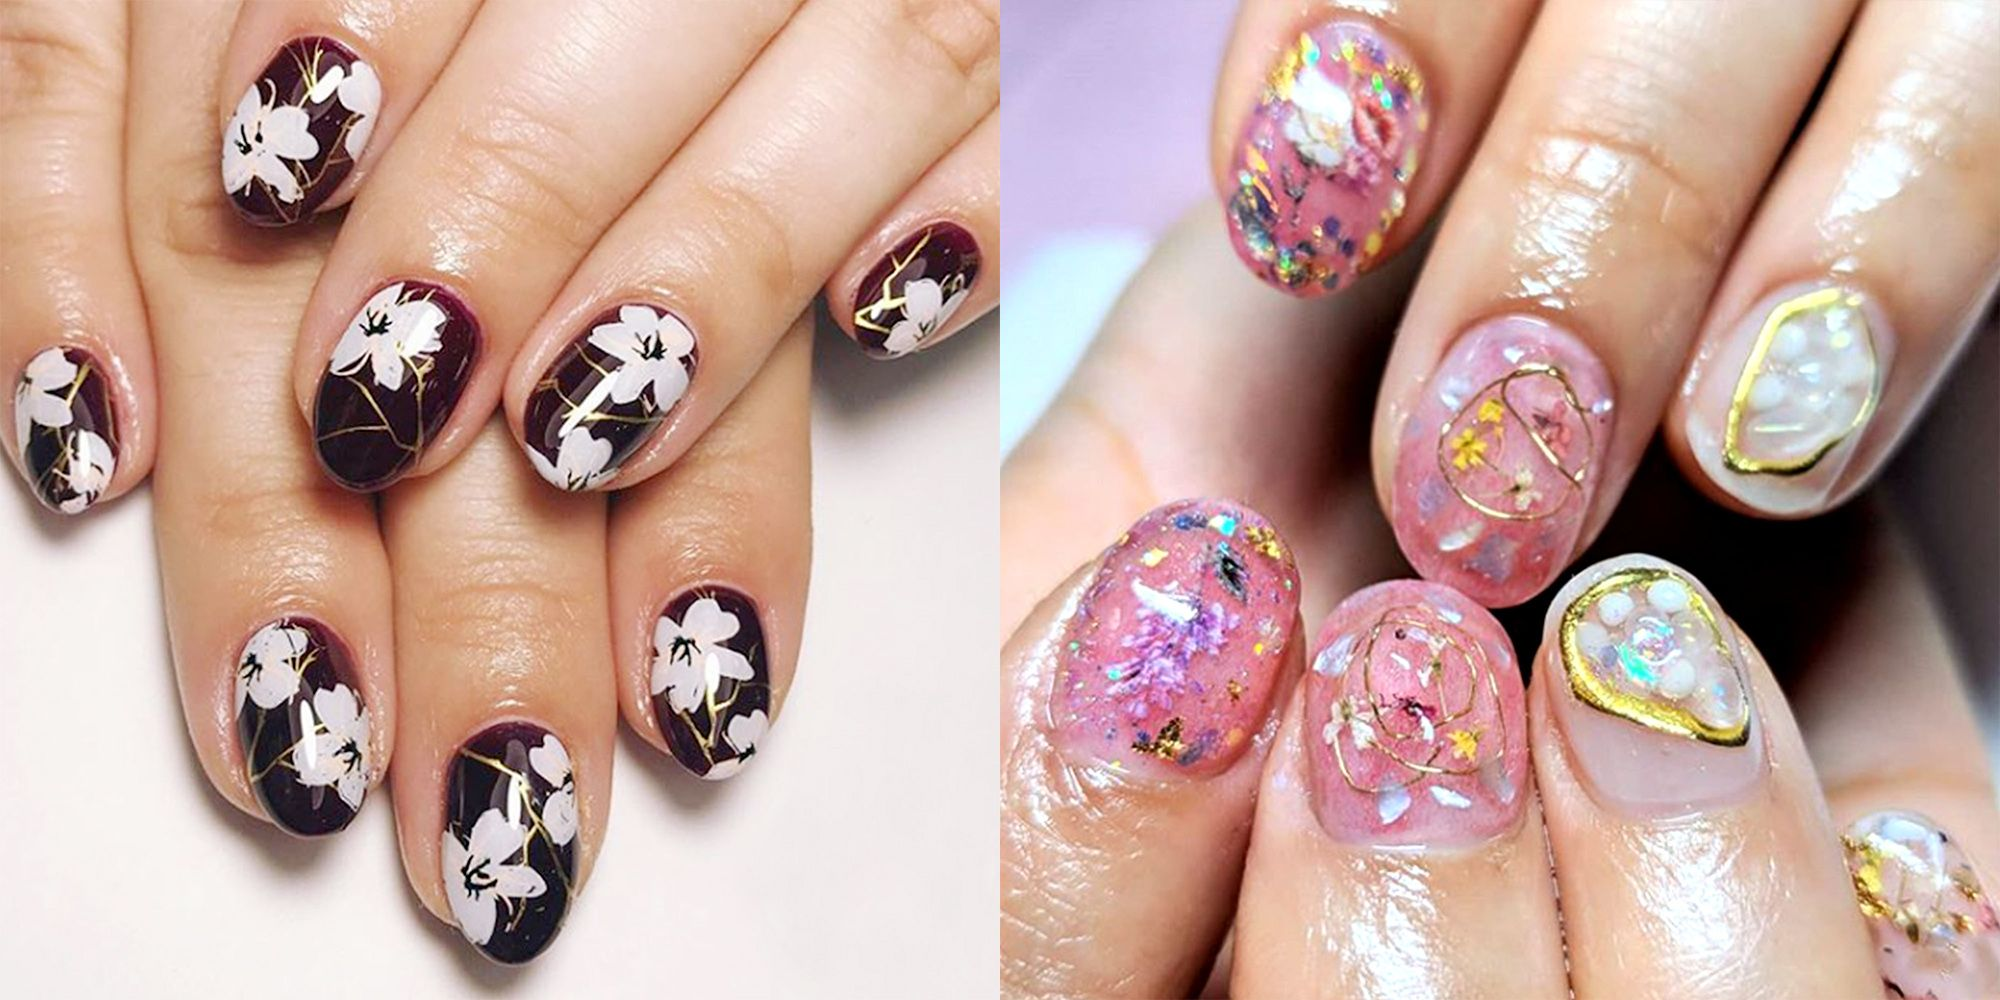 11 Fun Spring Floral Nail Designs - The Best Flower Designs for your ...